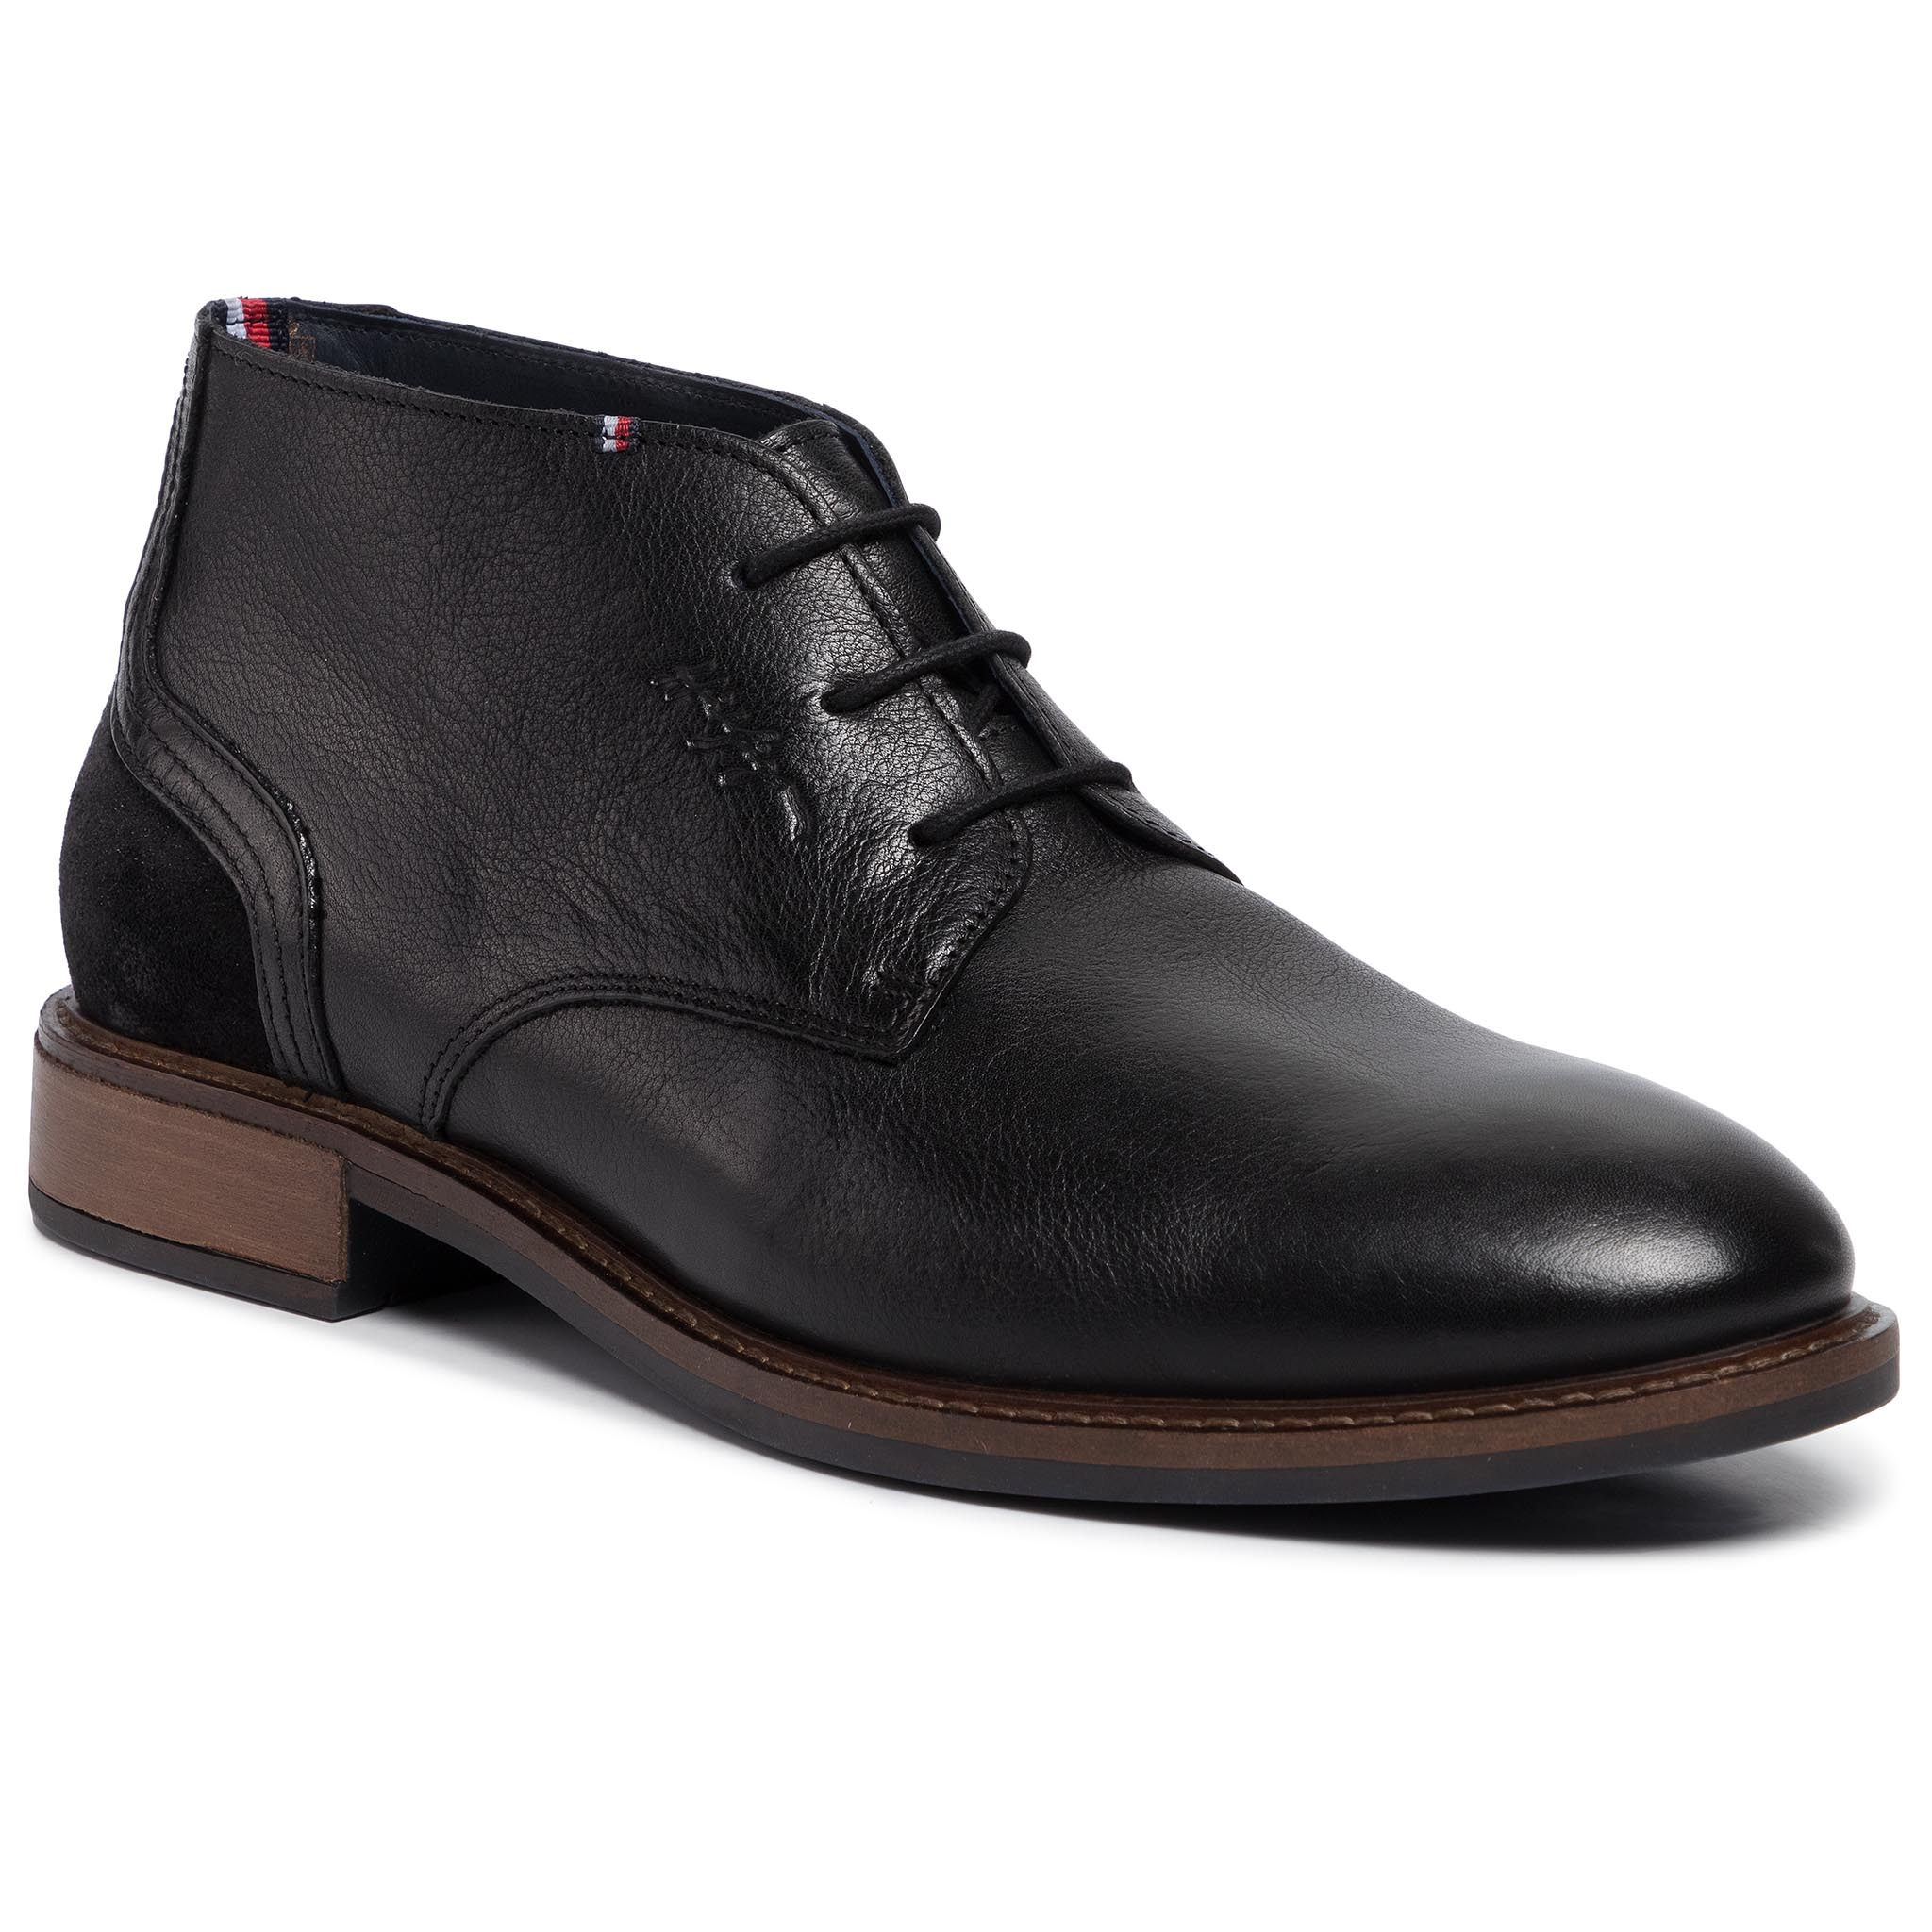 Ghete TOMMY HILFIGER - Elevated Leather Mix Boot FM0FM02438 Black 990